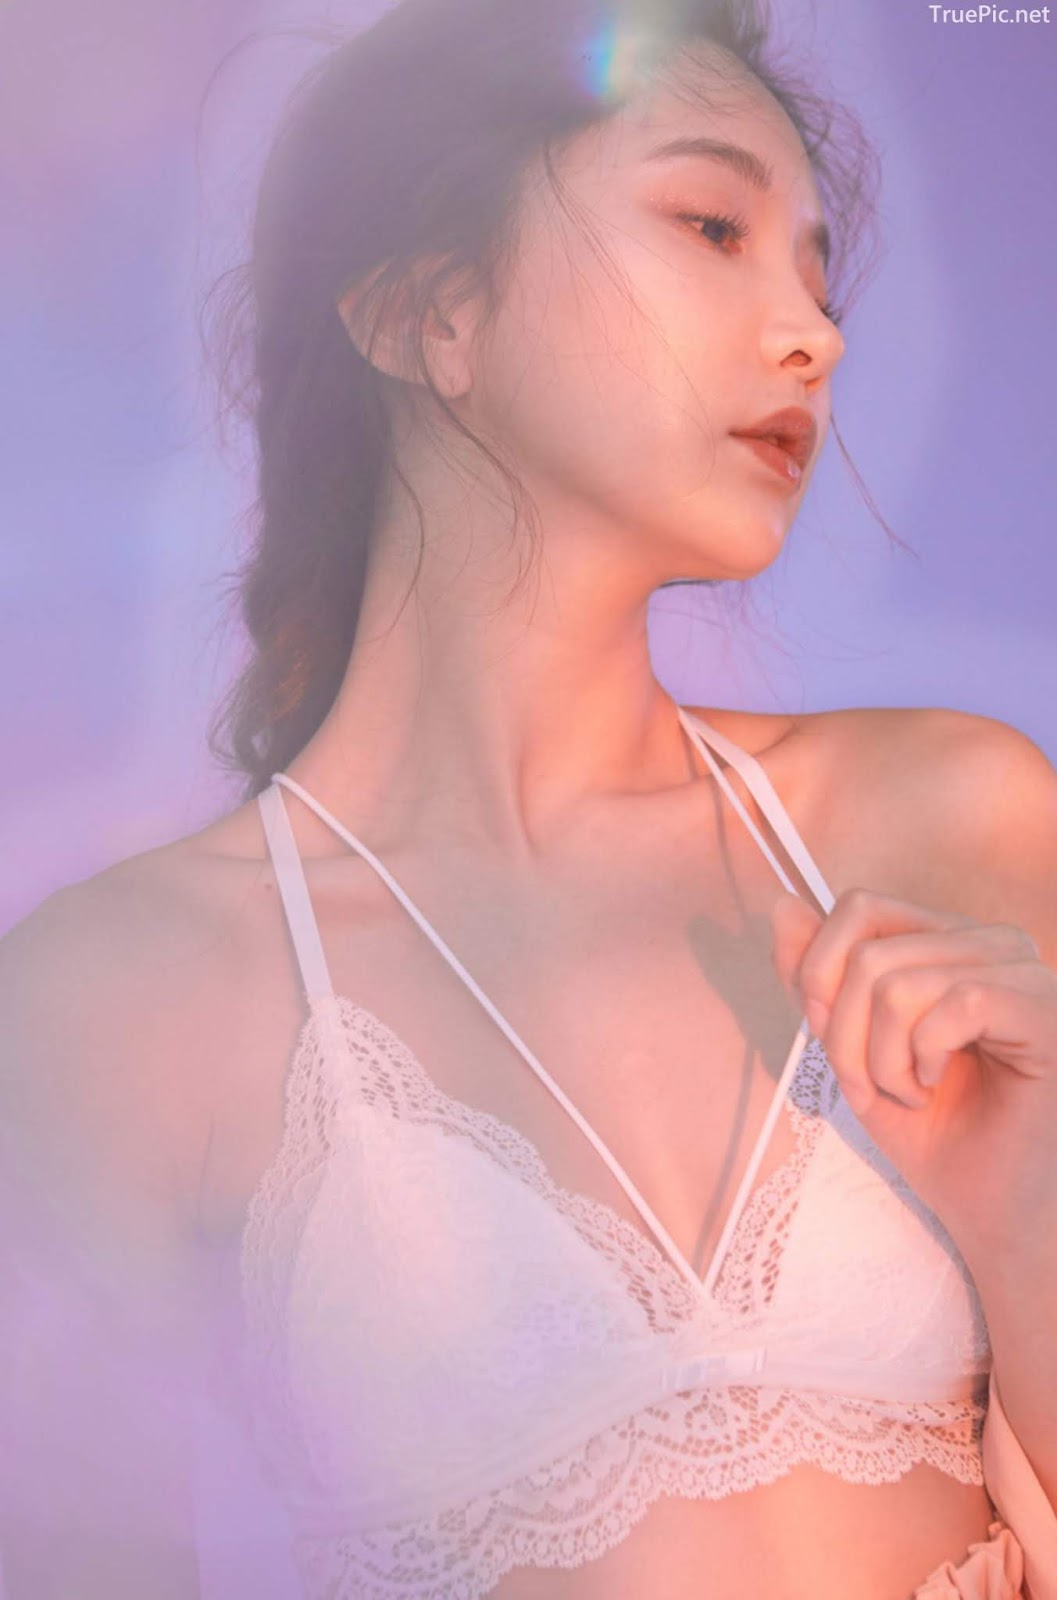 Korean model and fashion - Park Soo Yeon - Off-White Lavender and Salmon Pink Bra - Picture 7